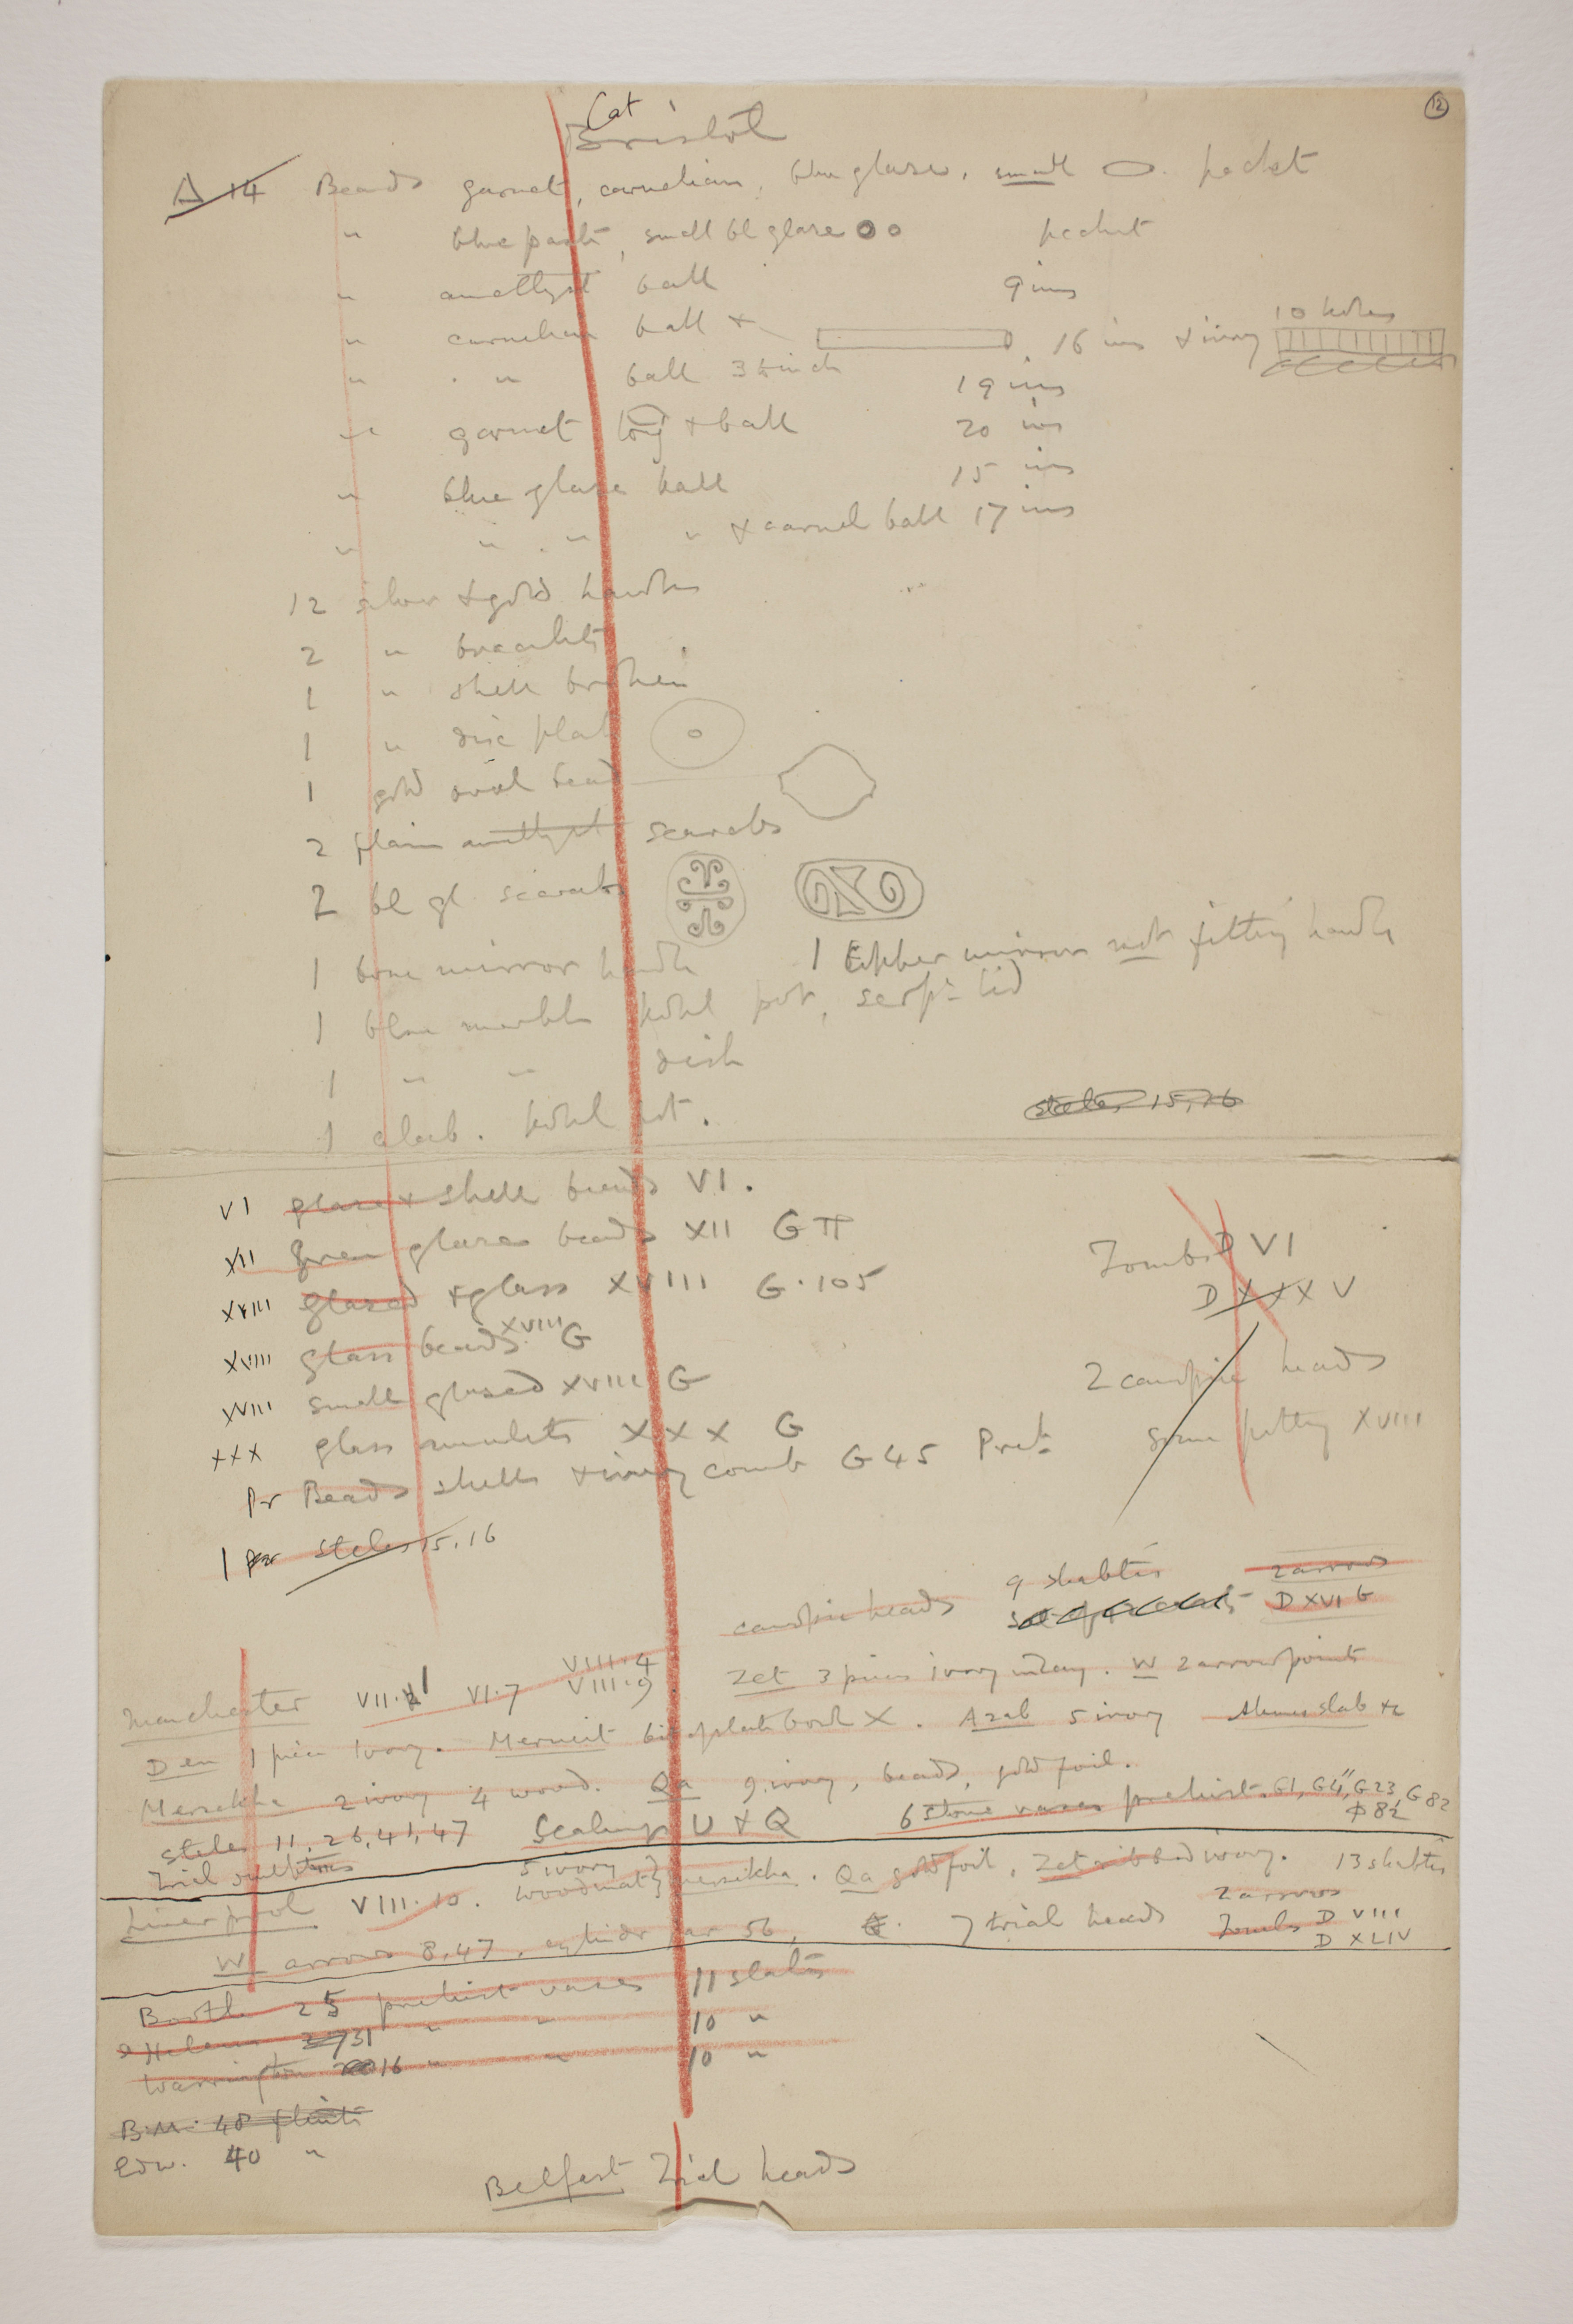 1899-1900 Abydos Multiple institution list PMA/WFP1/D/8/11.1